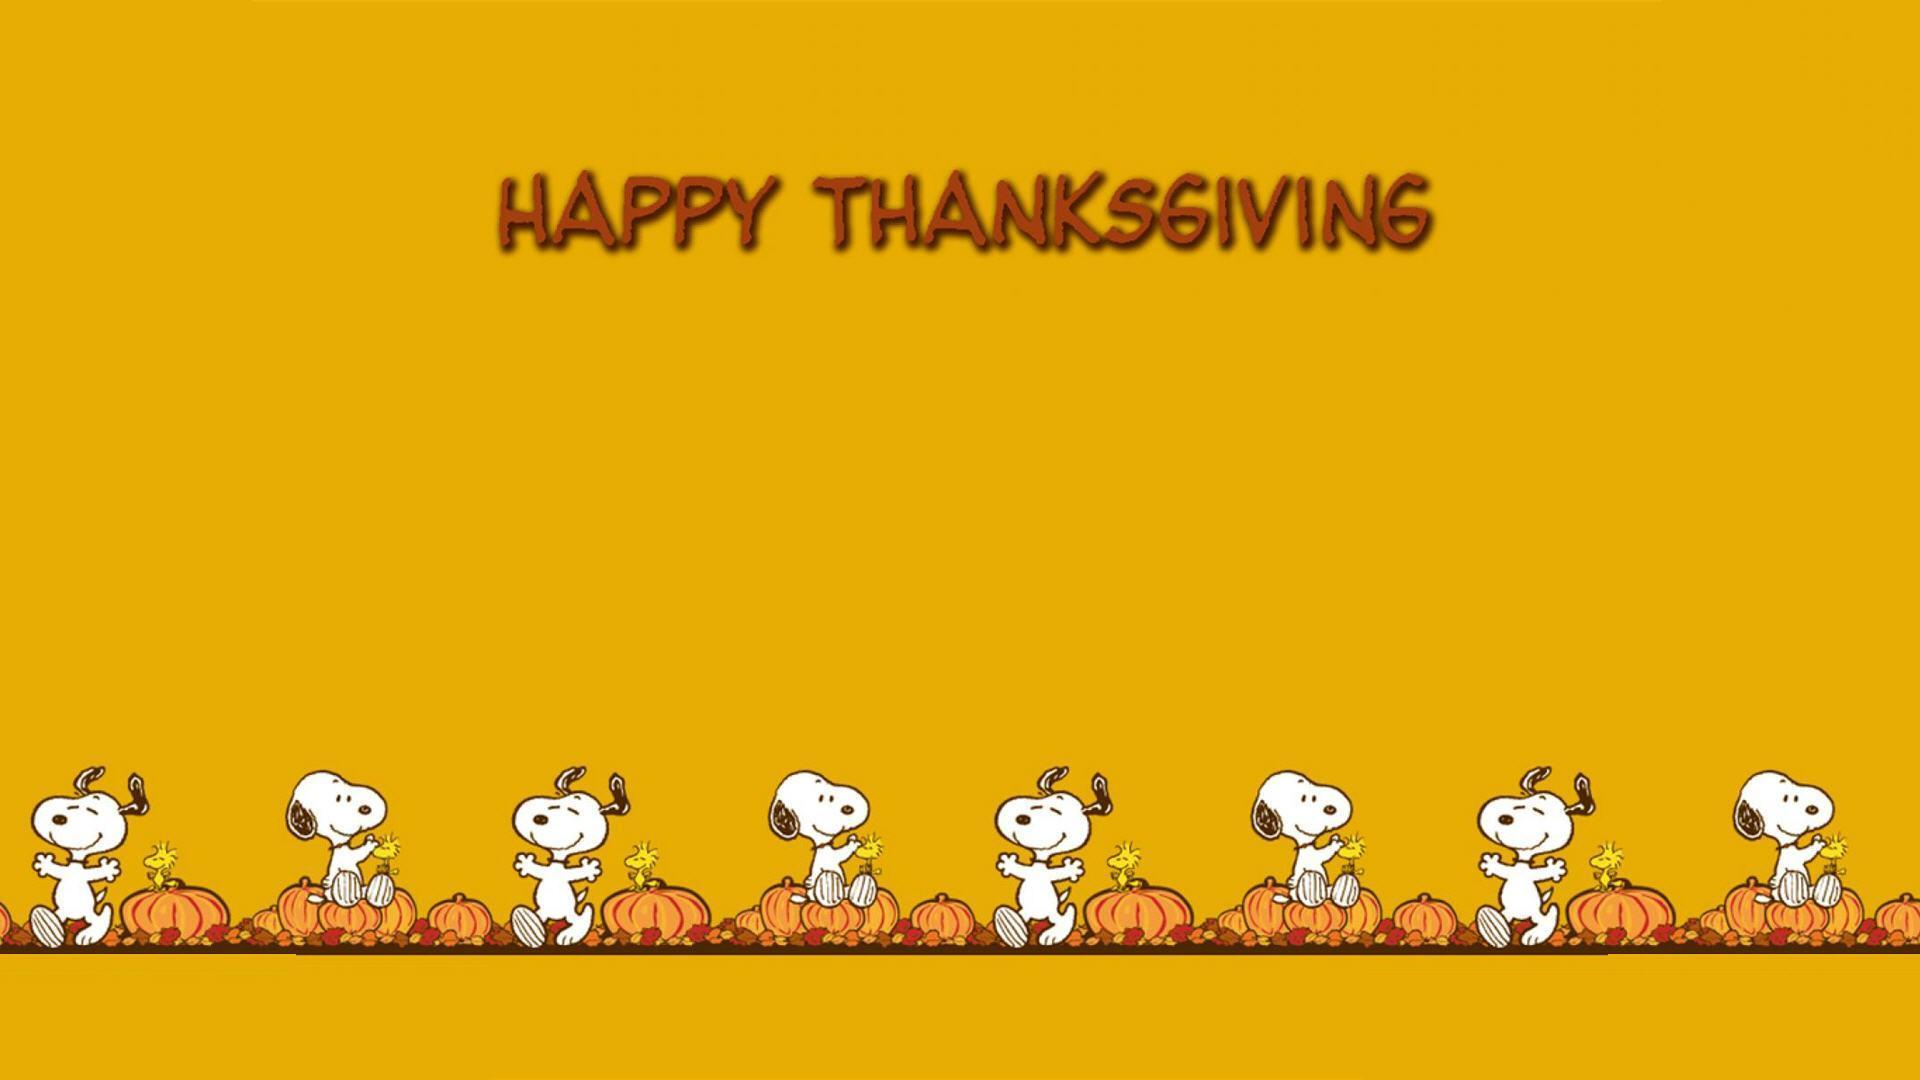 definition thanksgiving theme wallpaper - photo #34